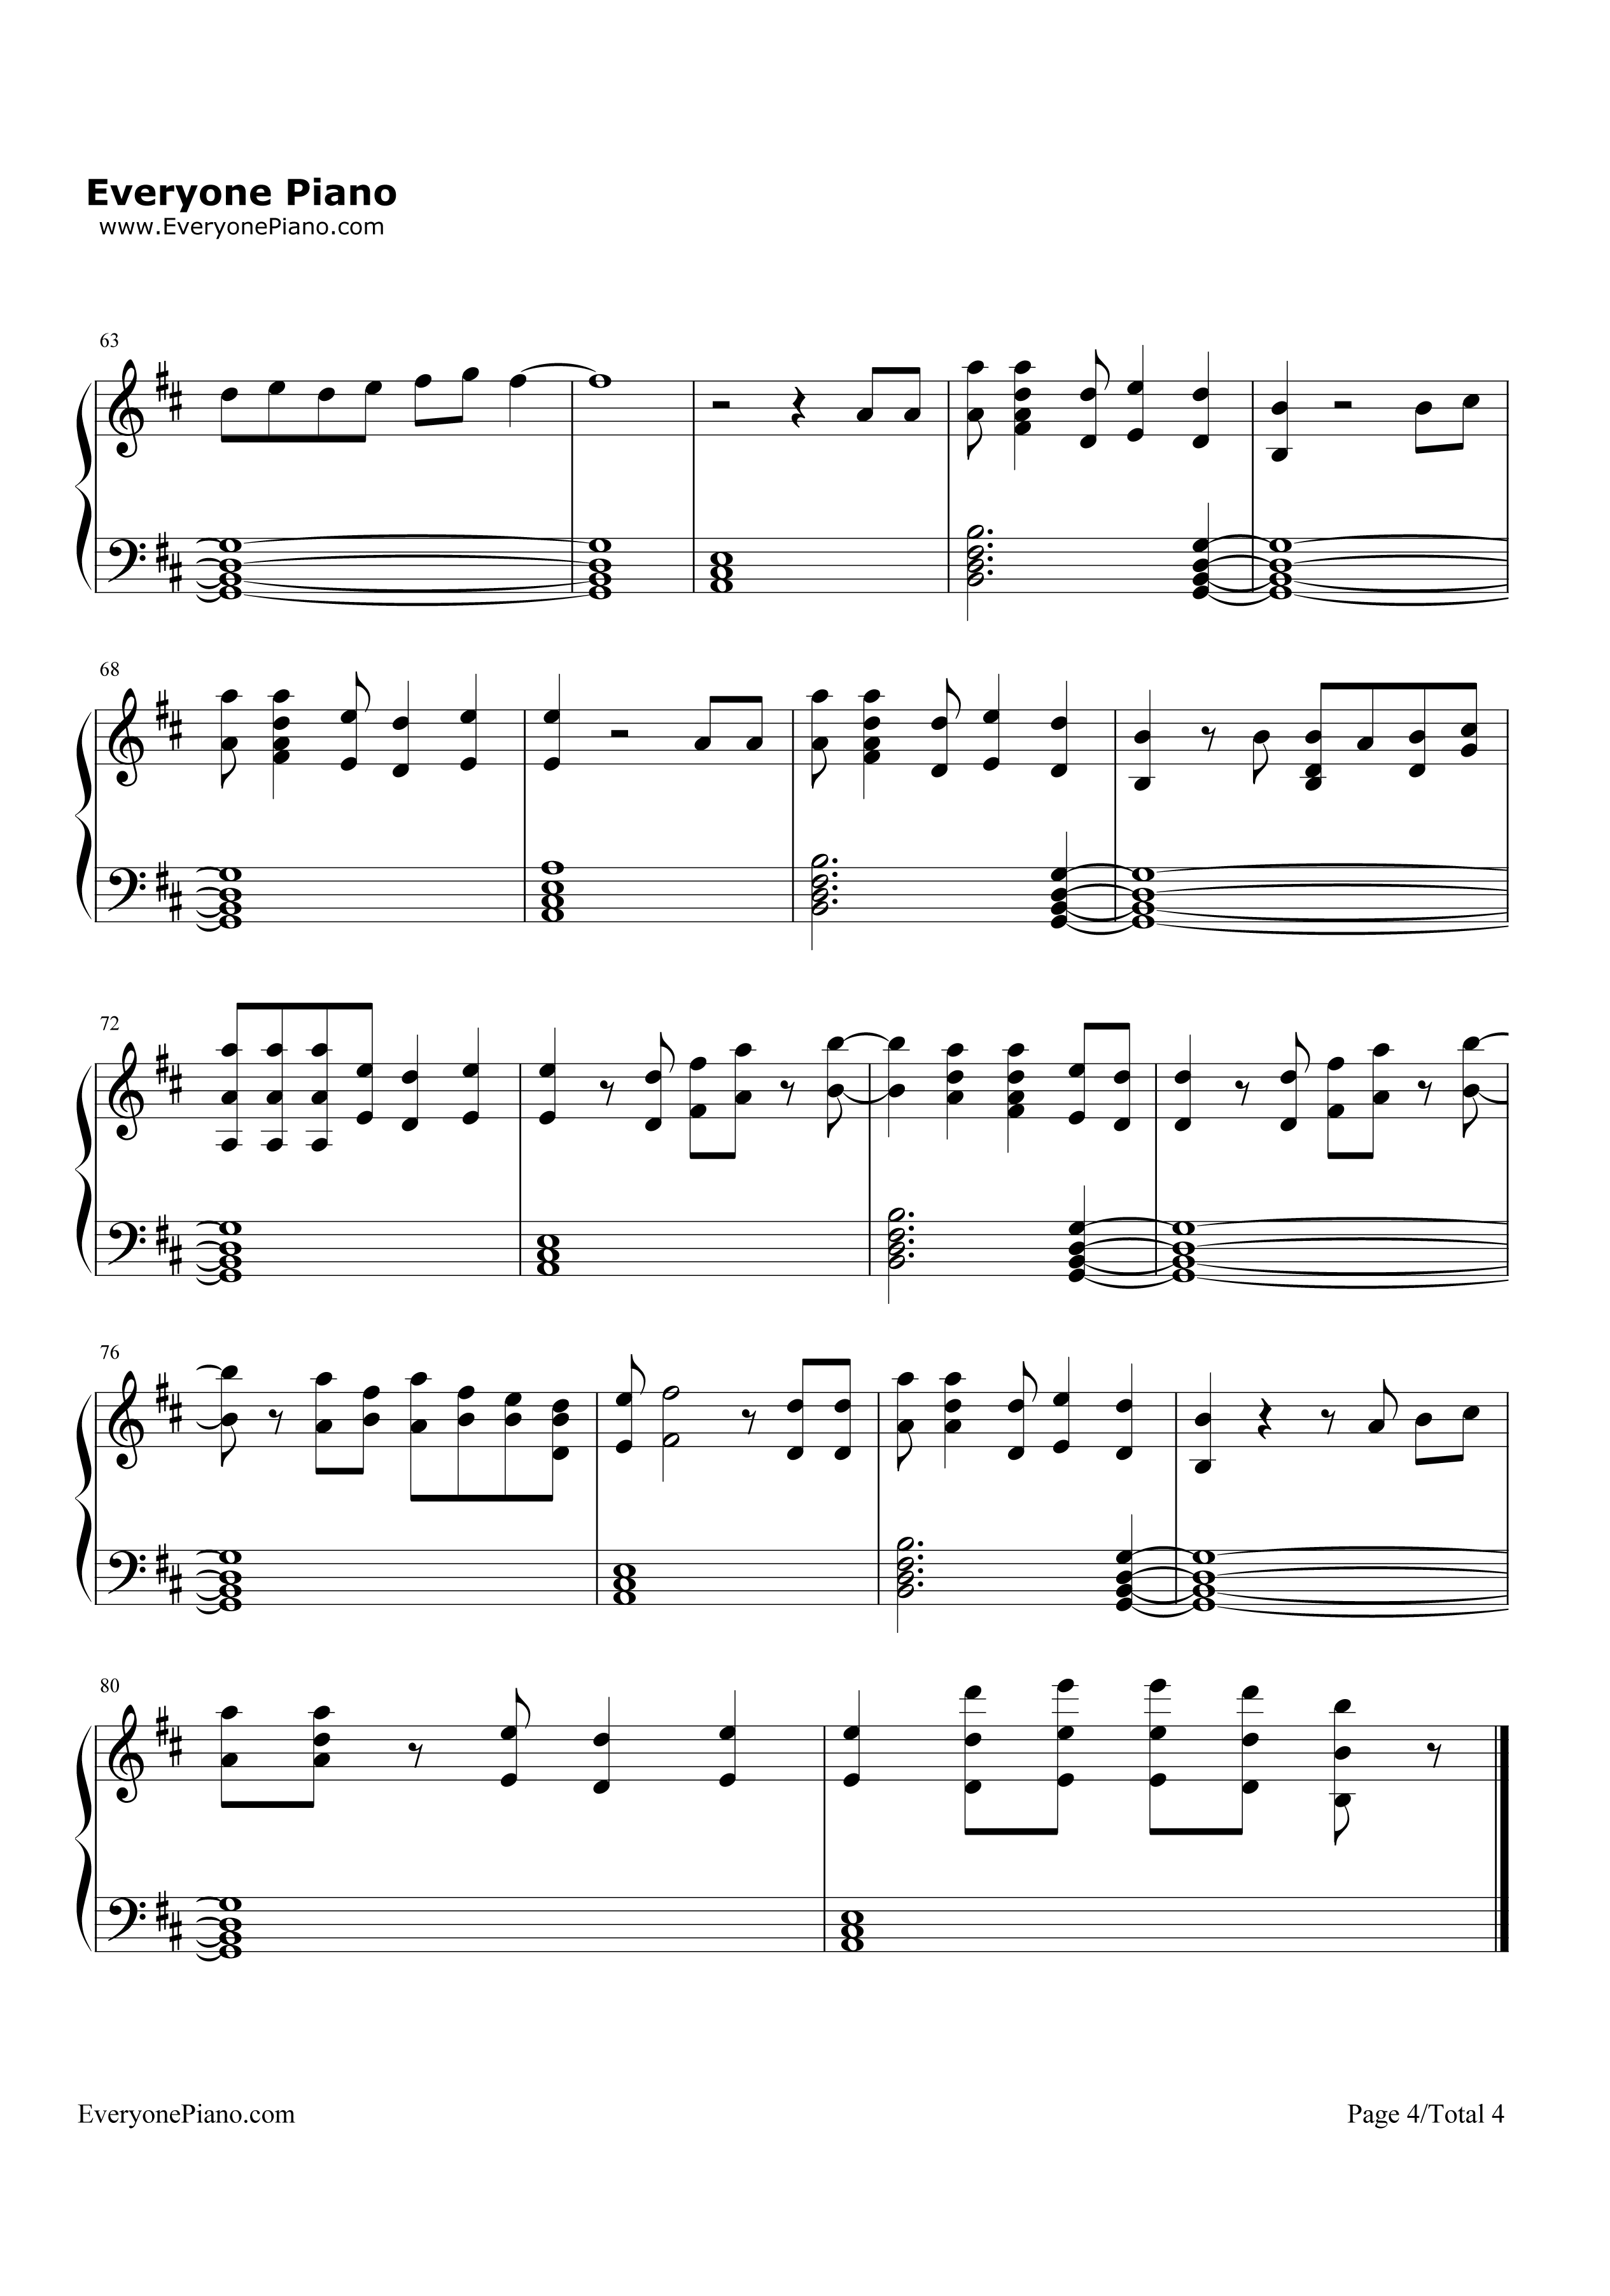 Never Forget You-Zara Larsson,MNEK Stave Preview 4-Free Piano Sheet Music u0026 Piano Chords